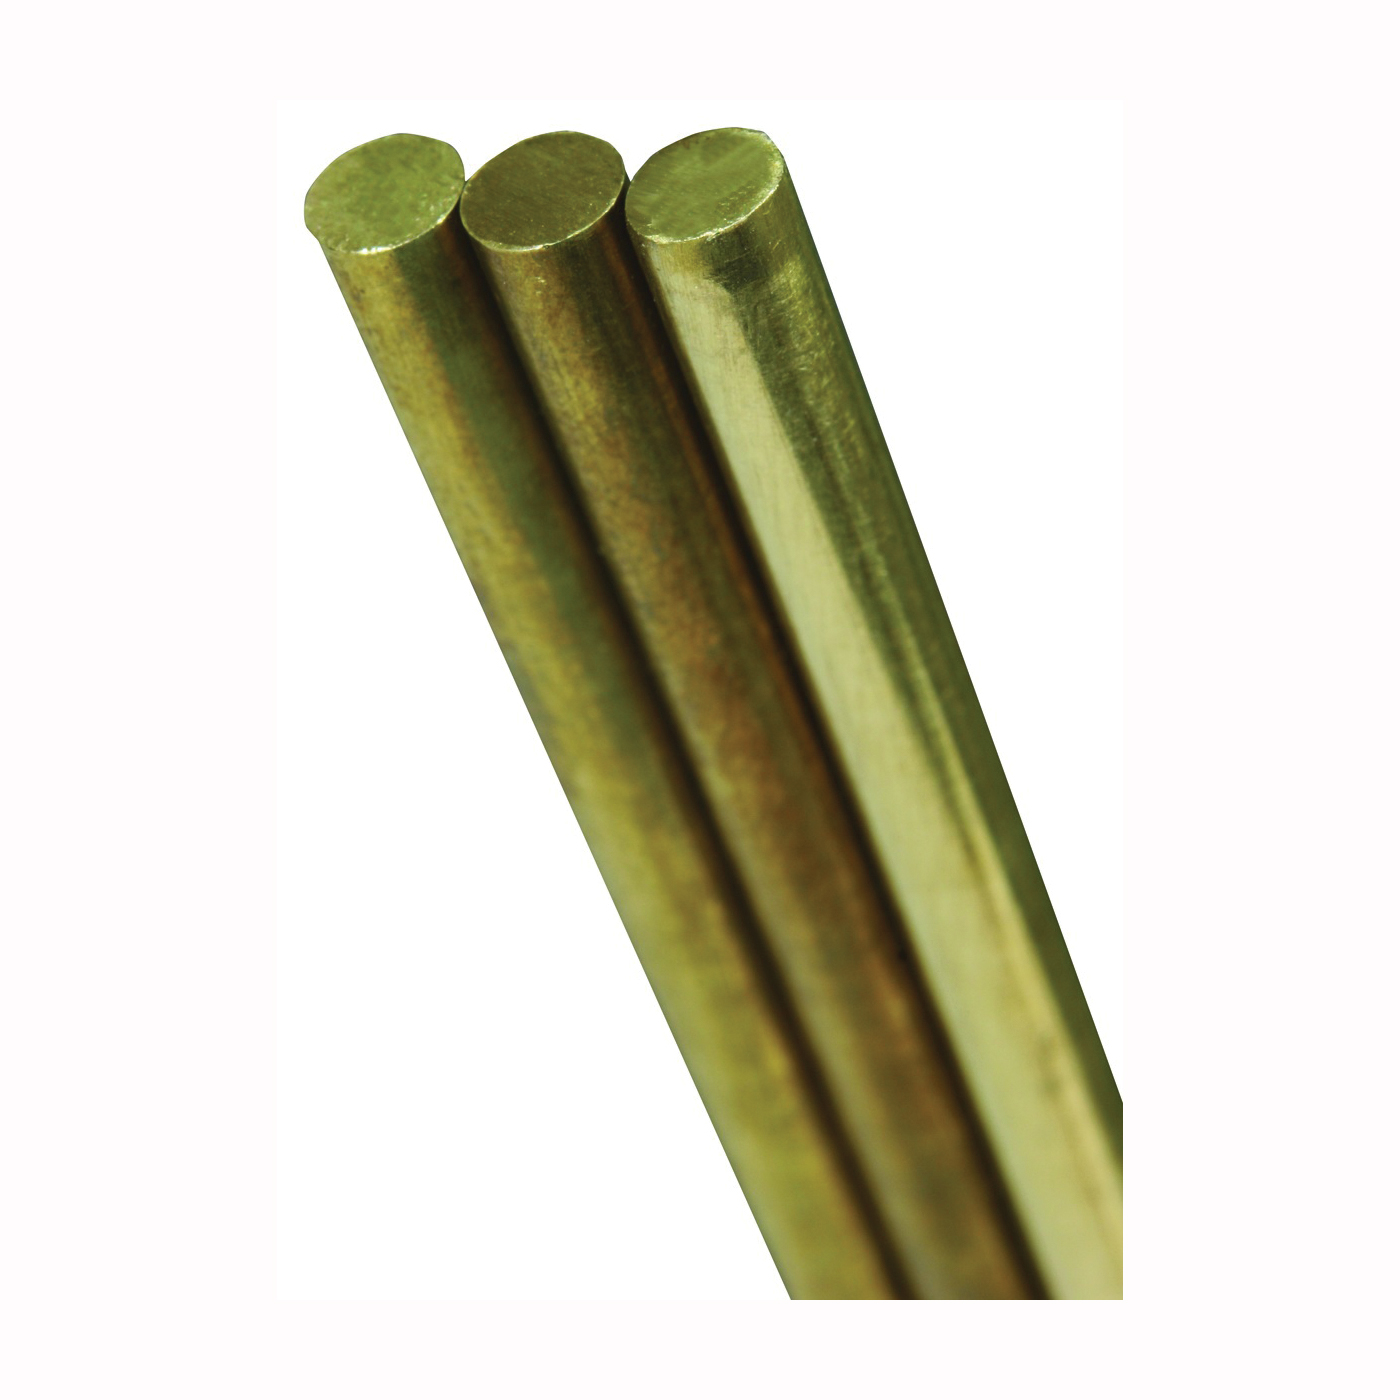 Picture of K & S 8166 Round Rod, 3/16 in Dia, 12 in L, 260 Brass, 260 Grade